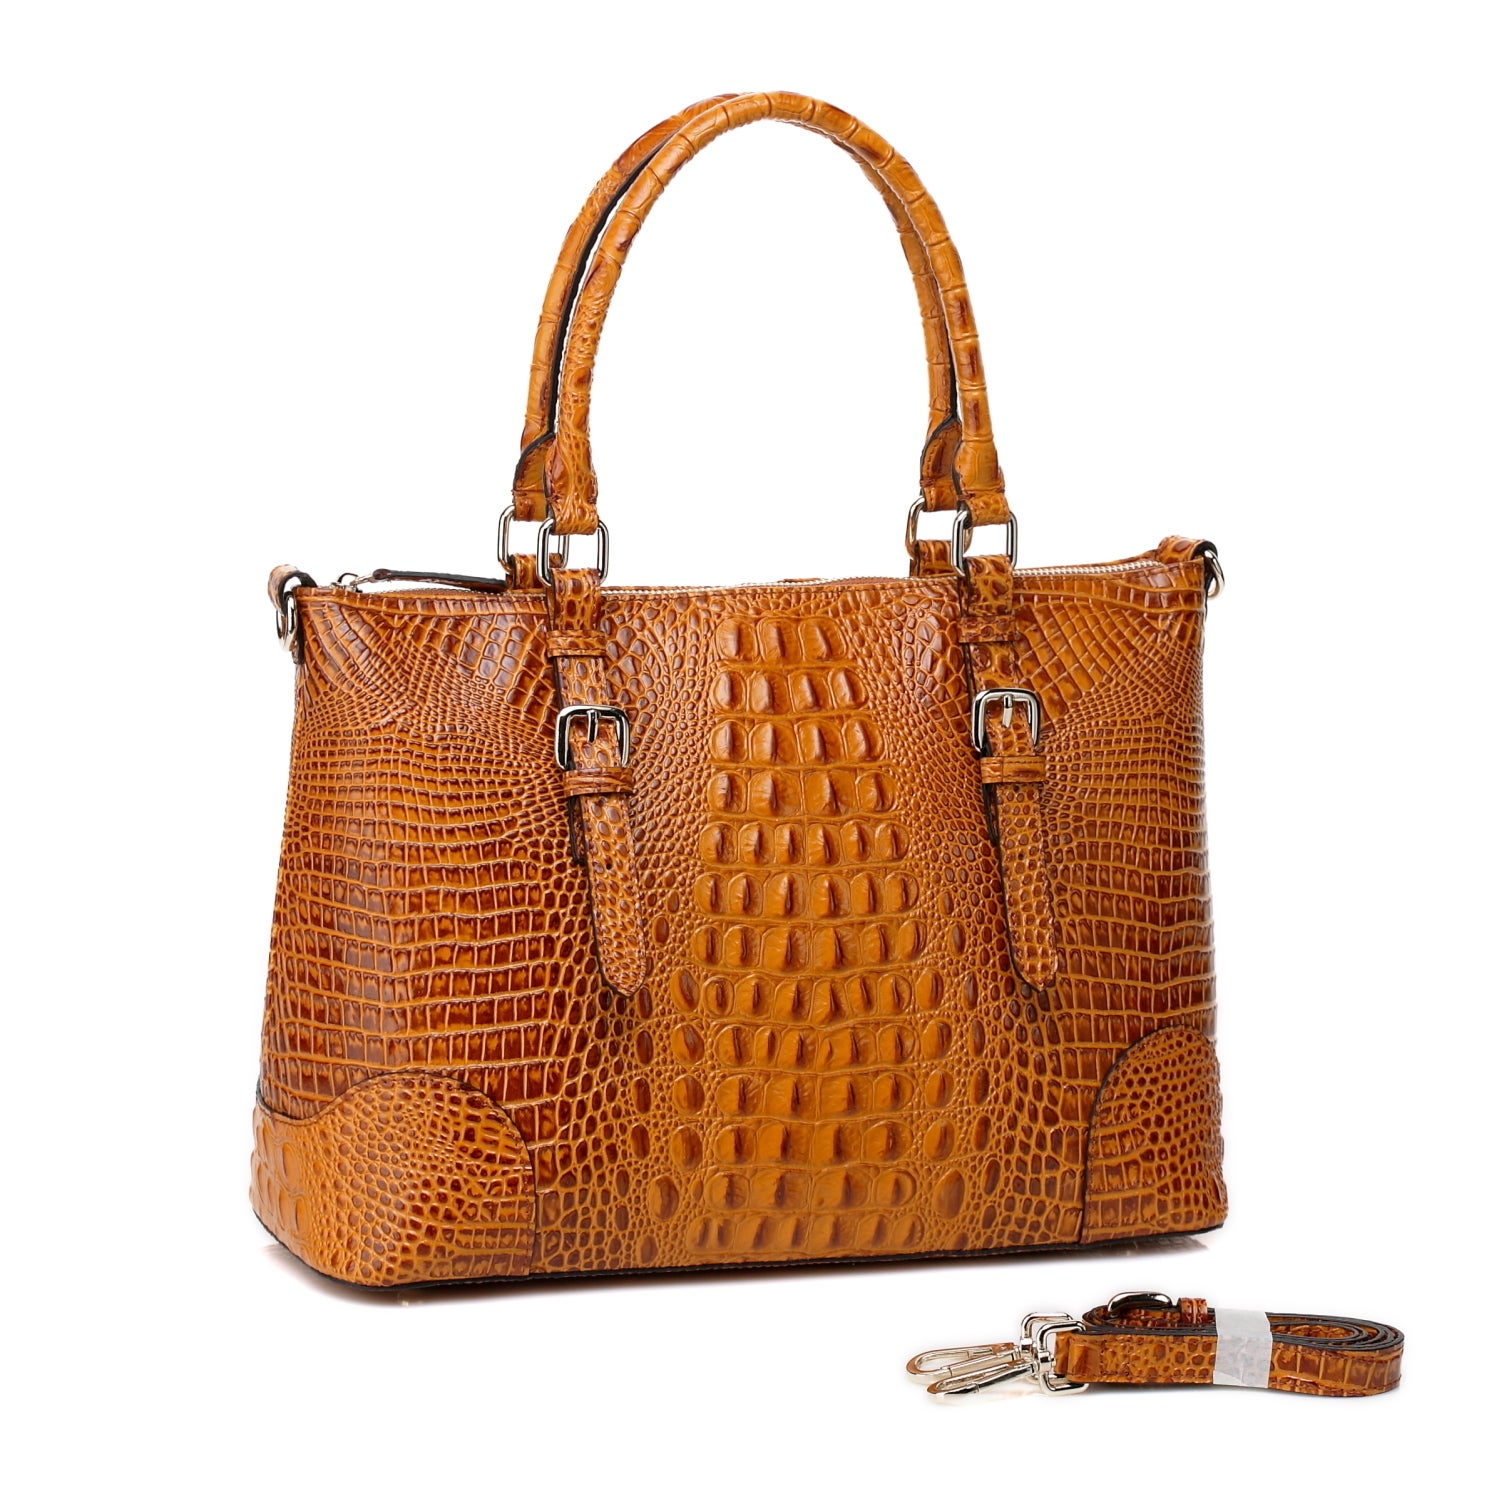 ce2f0fb51c Shop Vicenzo Leather Carole Croc Embossed Leather Tote Handbag - Free  Shipping Today - Overstock - 10639977